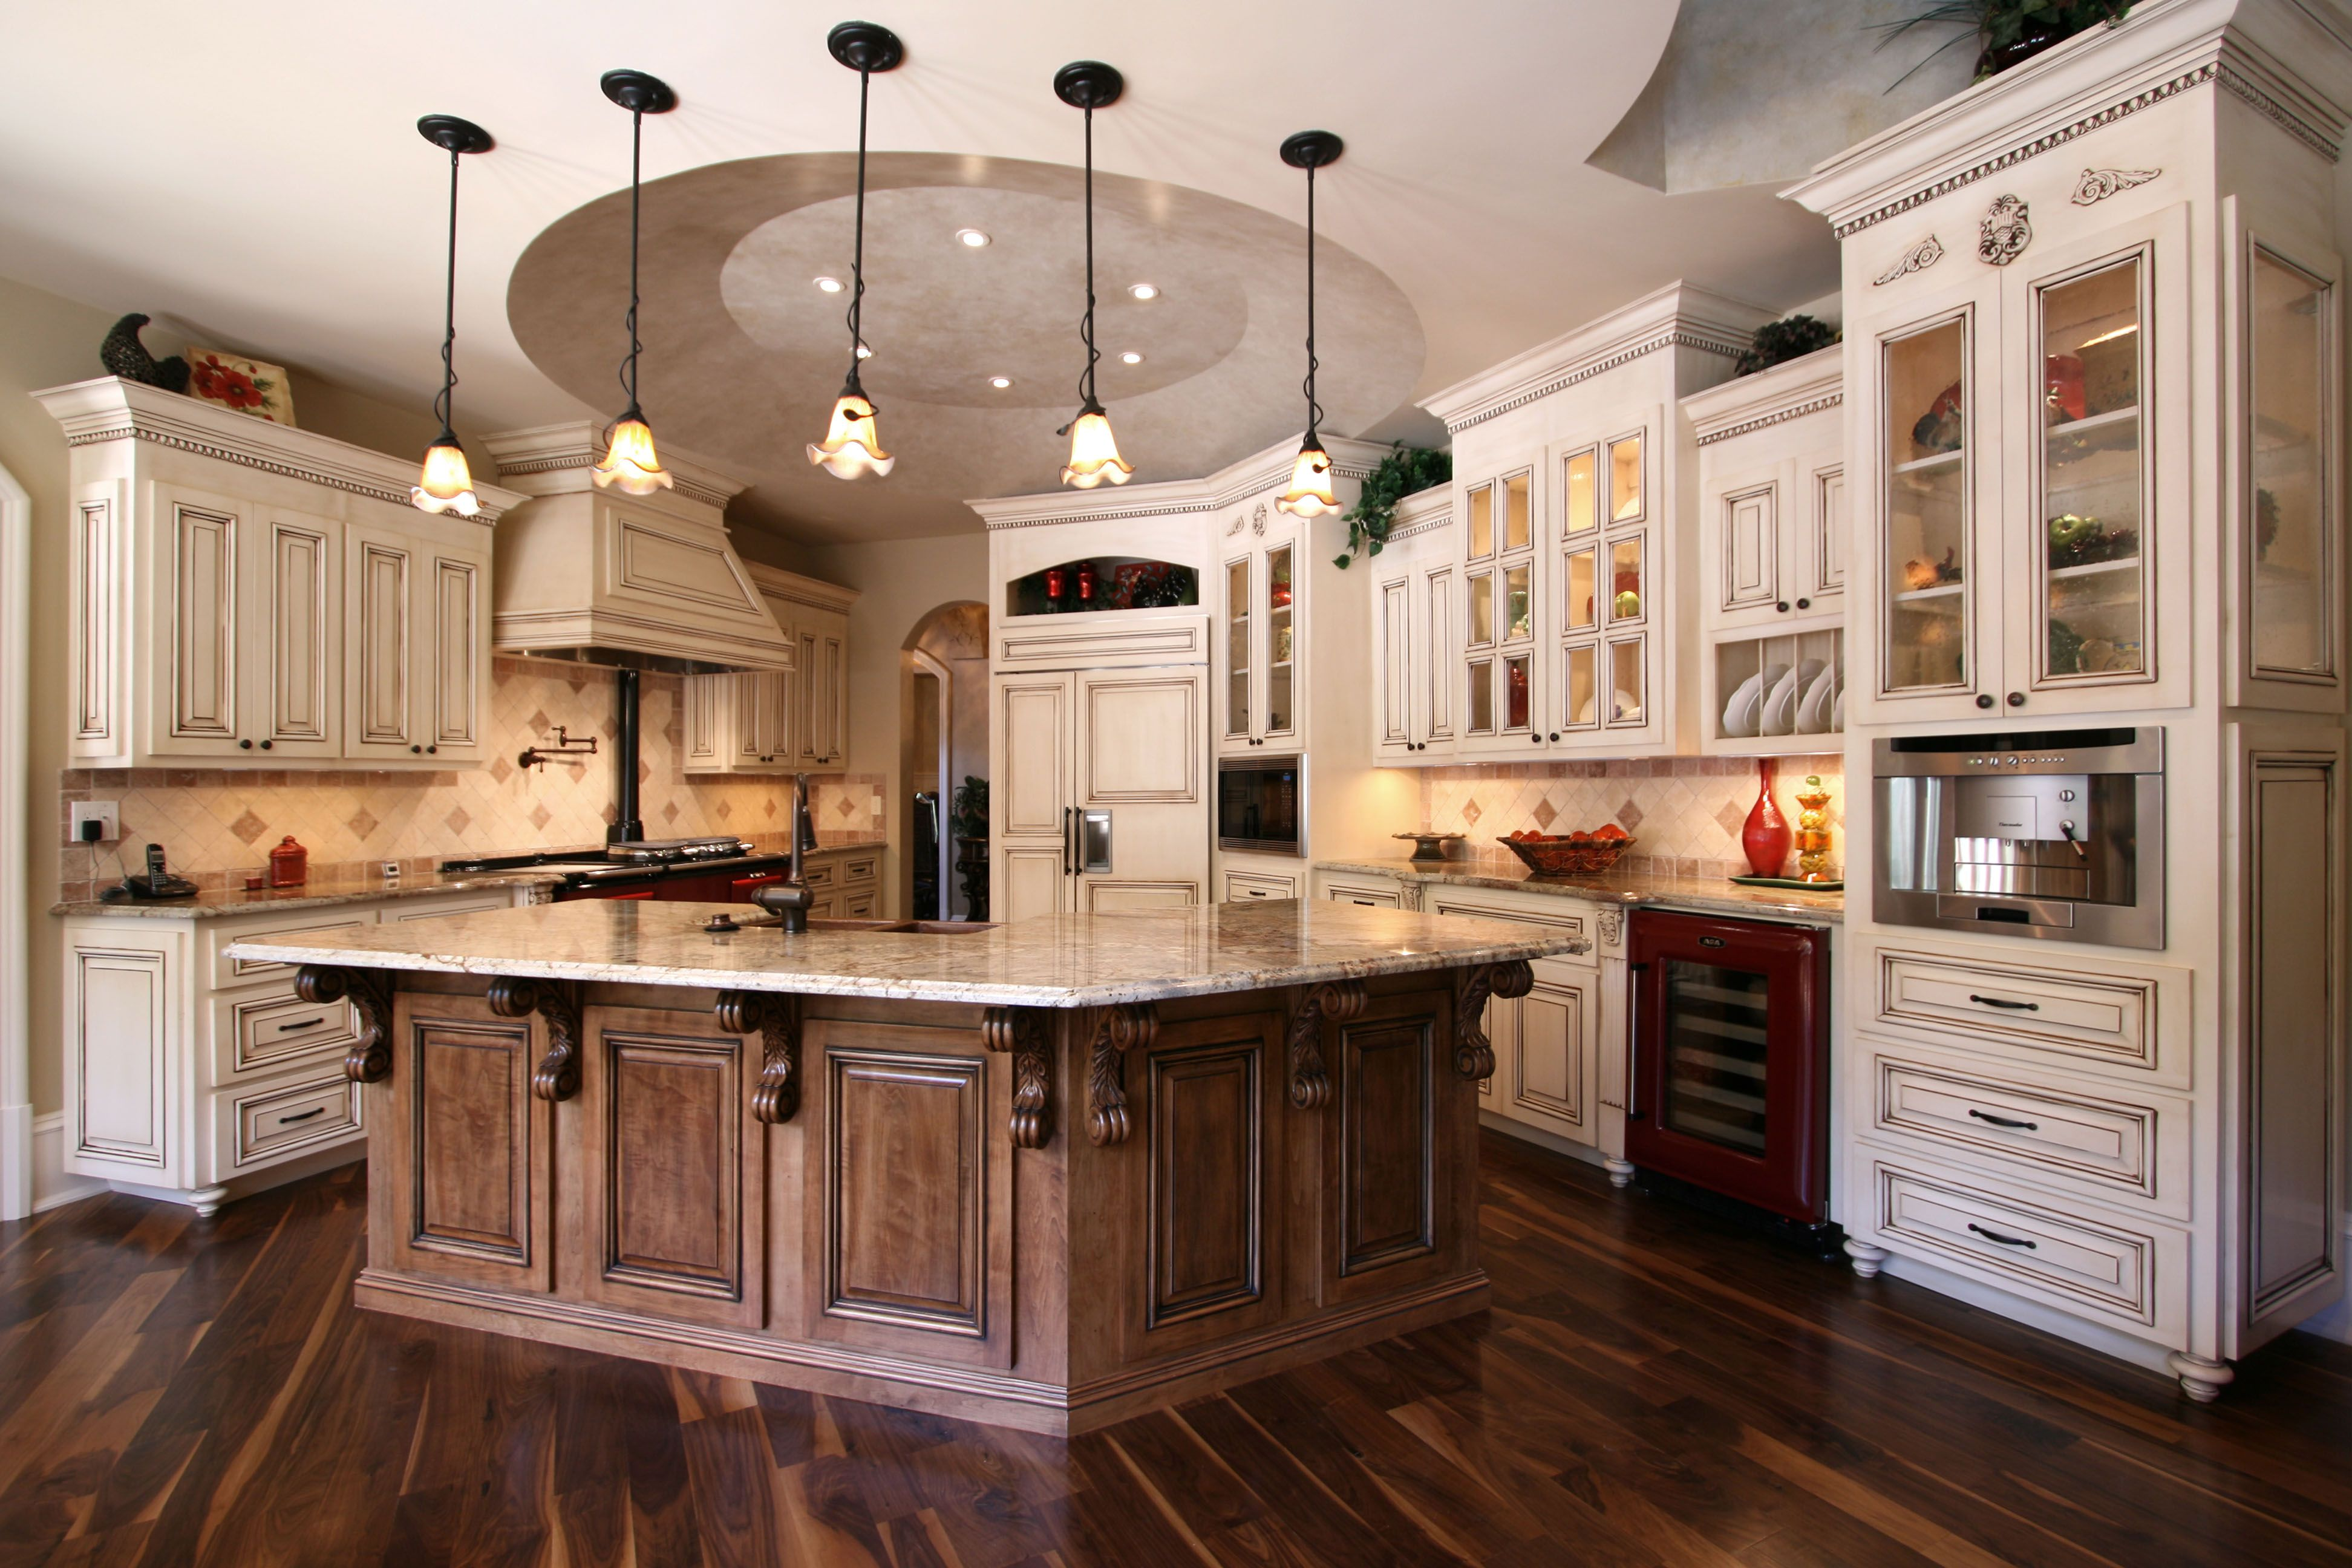 Custom Cabinets By Walker Woodworking This Beautifully Styled French Country Kit Custom Kitchen Cabinets Design Country Style Kitchen Country Kitchen Cabinets